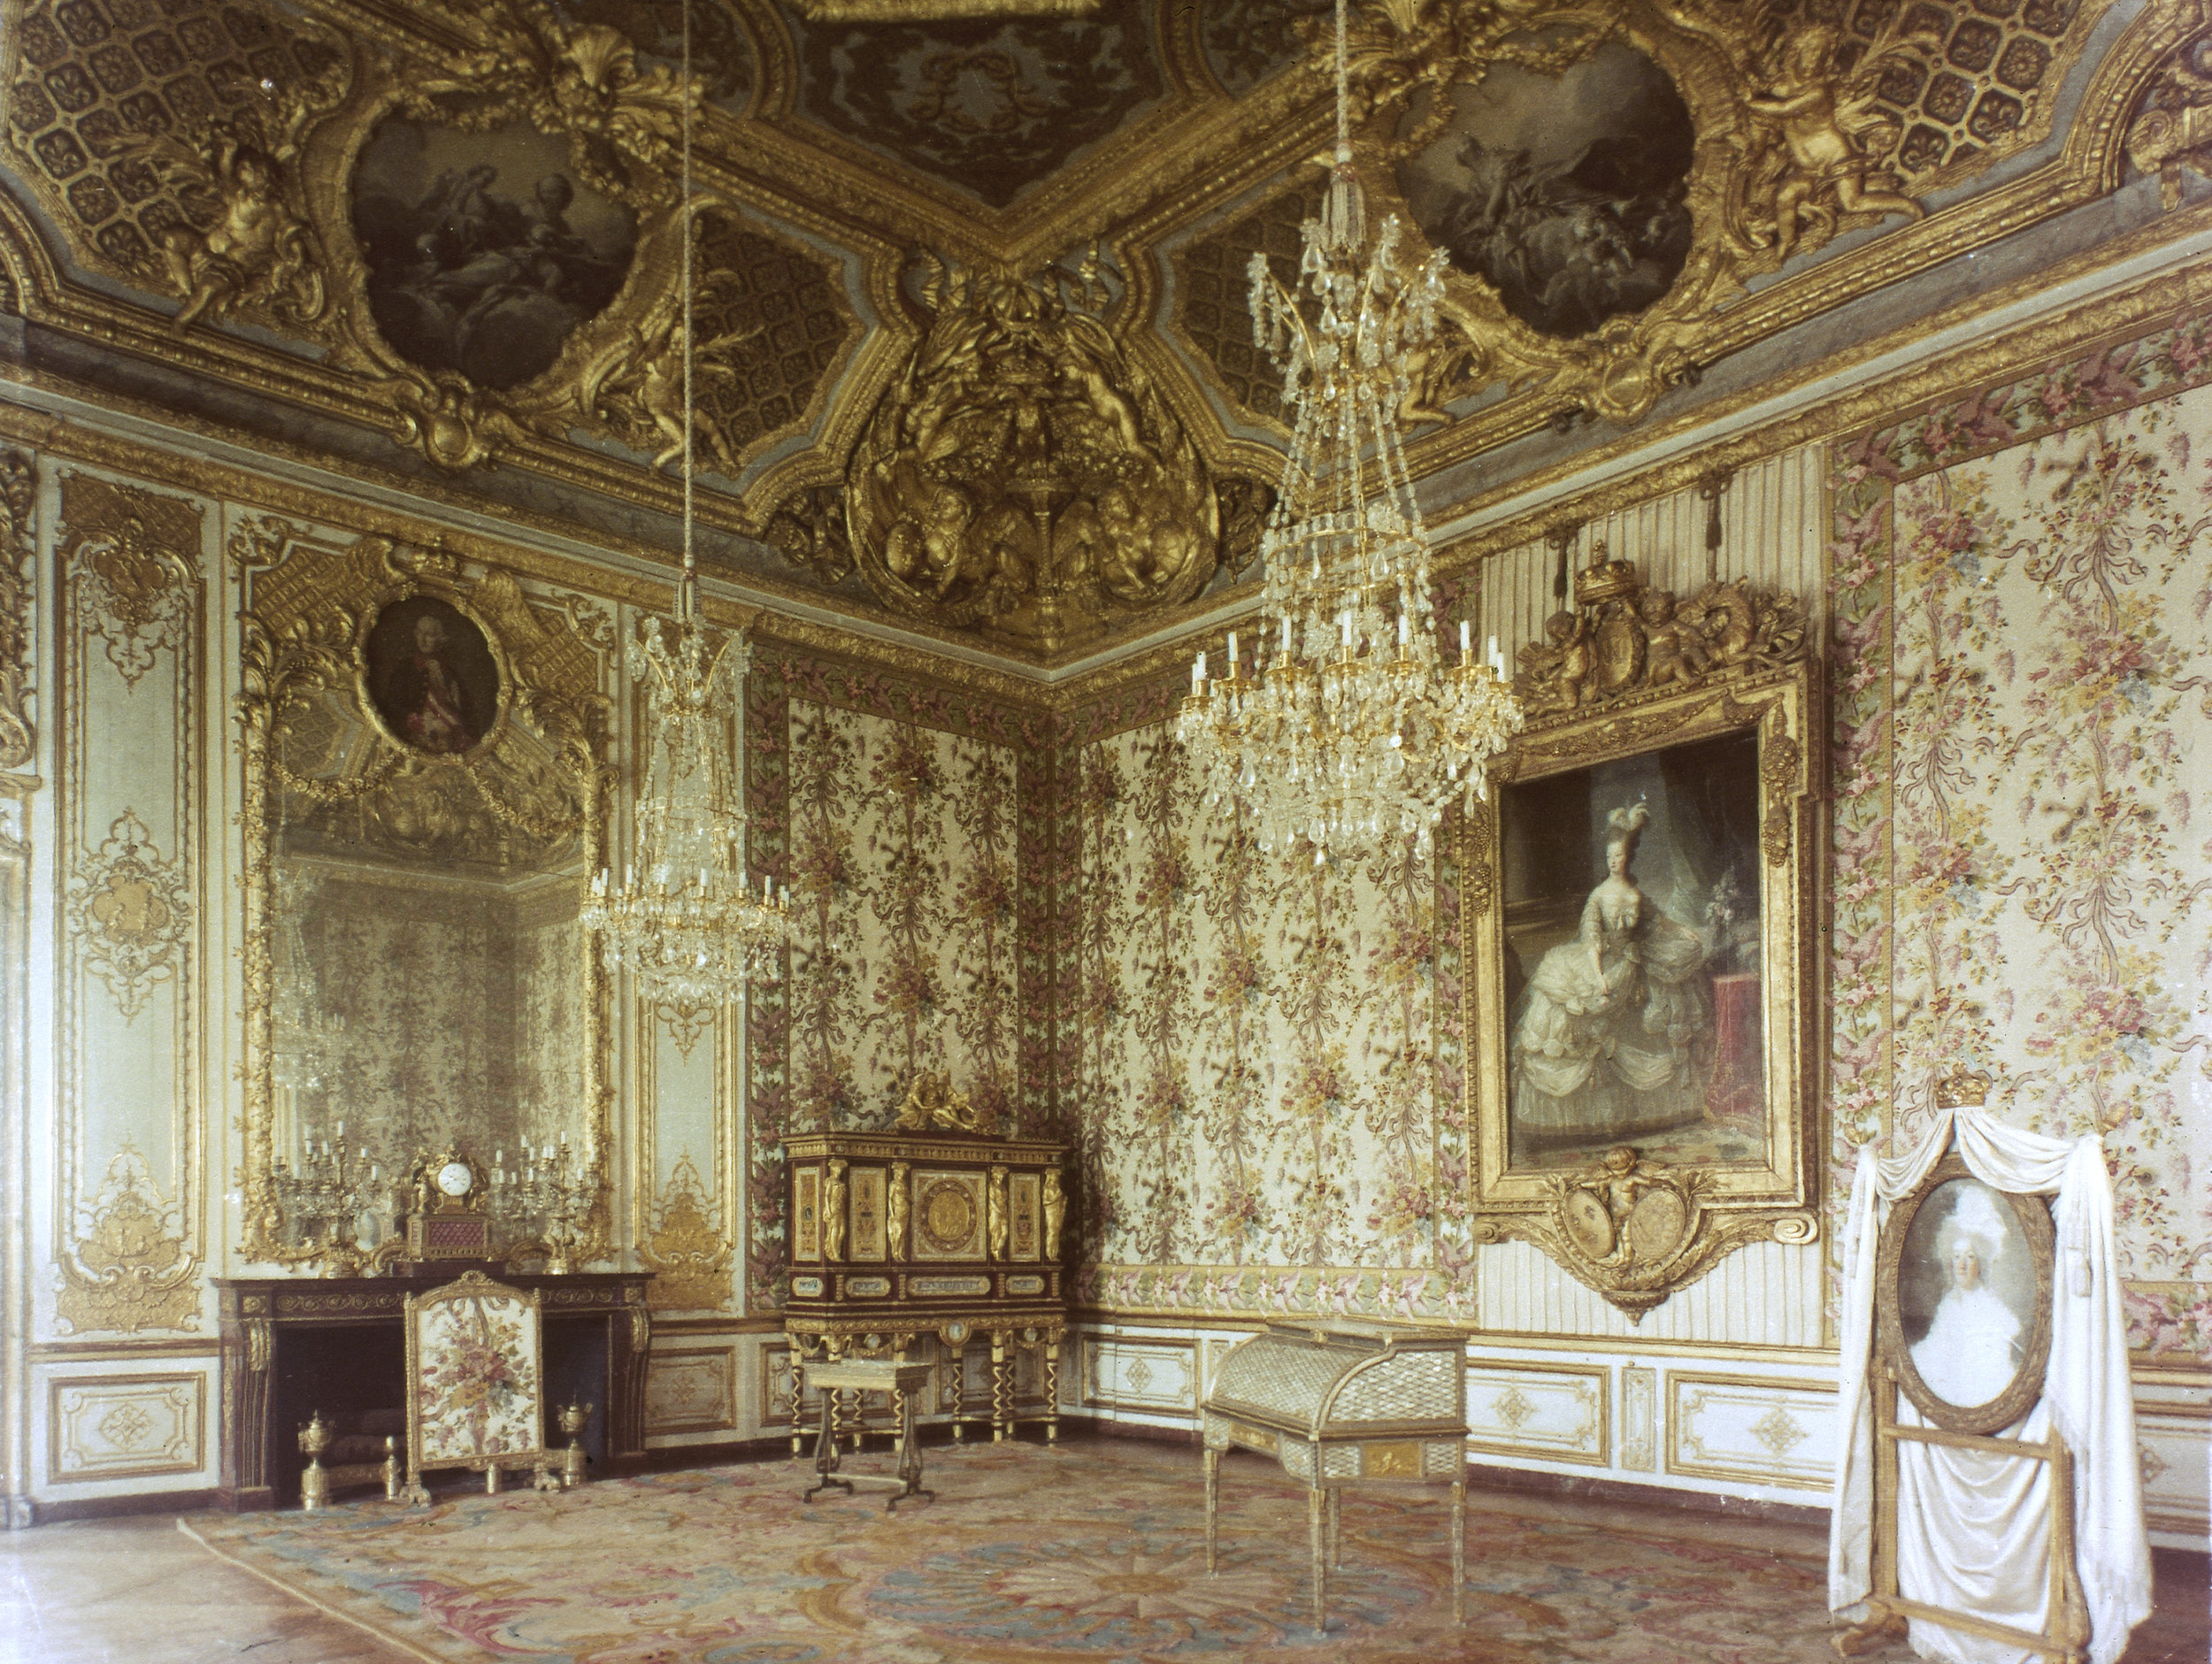 1955. The first phase of the restoration of the Queen's bedchamber showing the sumptuous textiles rewoven at lyon, and several pieces returned to the chateau in the 20th century. Photograph by permission of and © 2019 The Granger Collection LTD d/b/a GRANGER - Historical Picture Archive. All rights reserved.